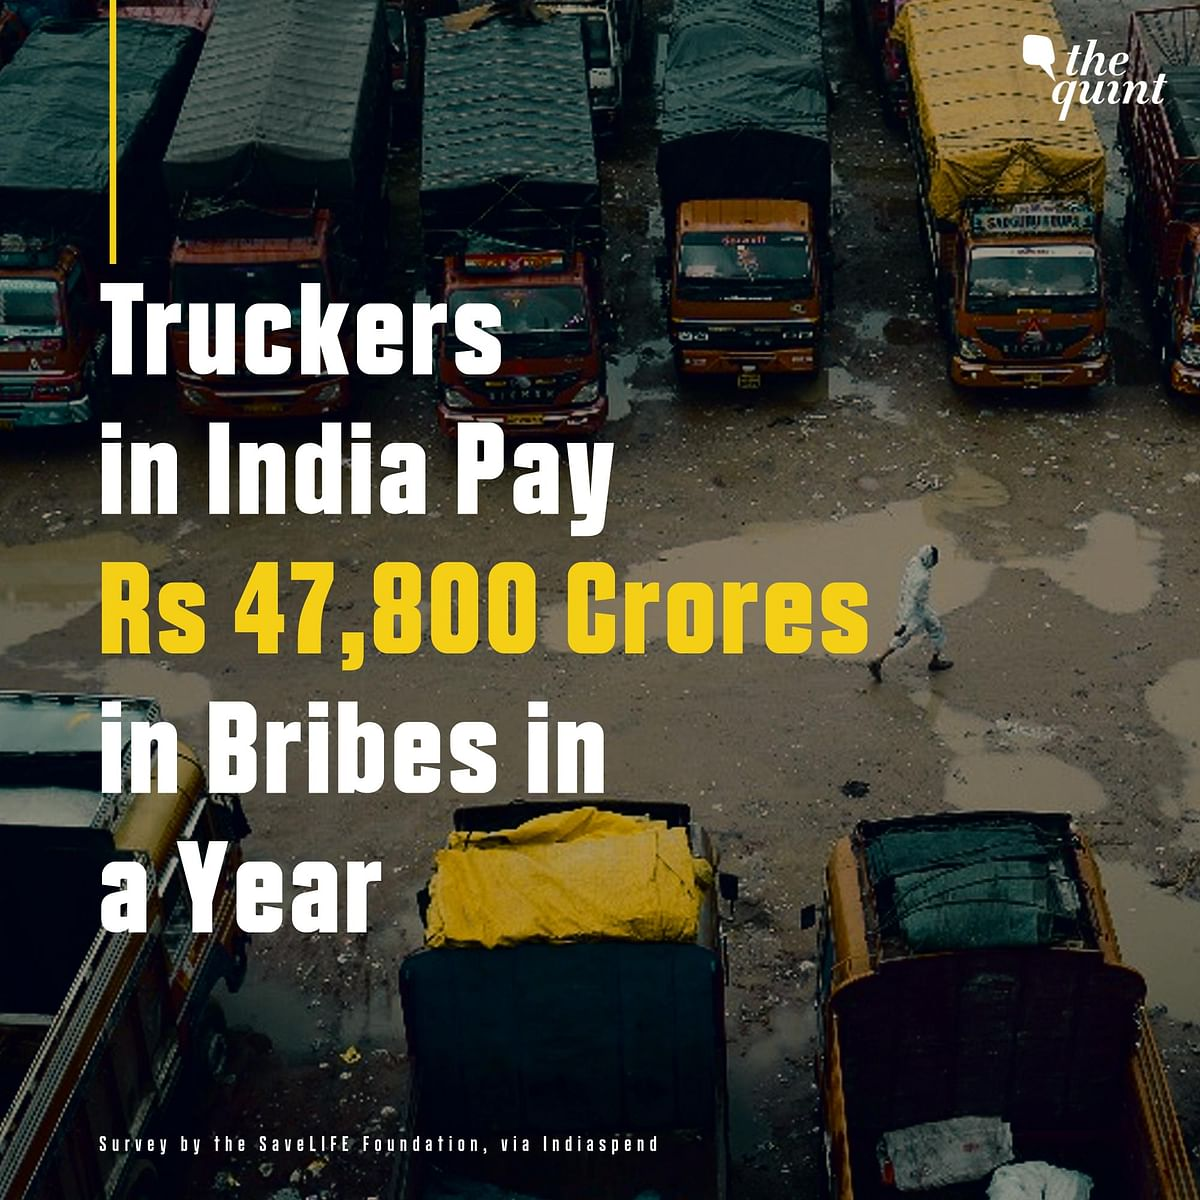 The annual bribe amount is nearly equal to the government's expenditure on infrastructure in Arunachal Pradesh over the last five years.